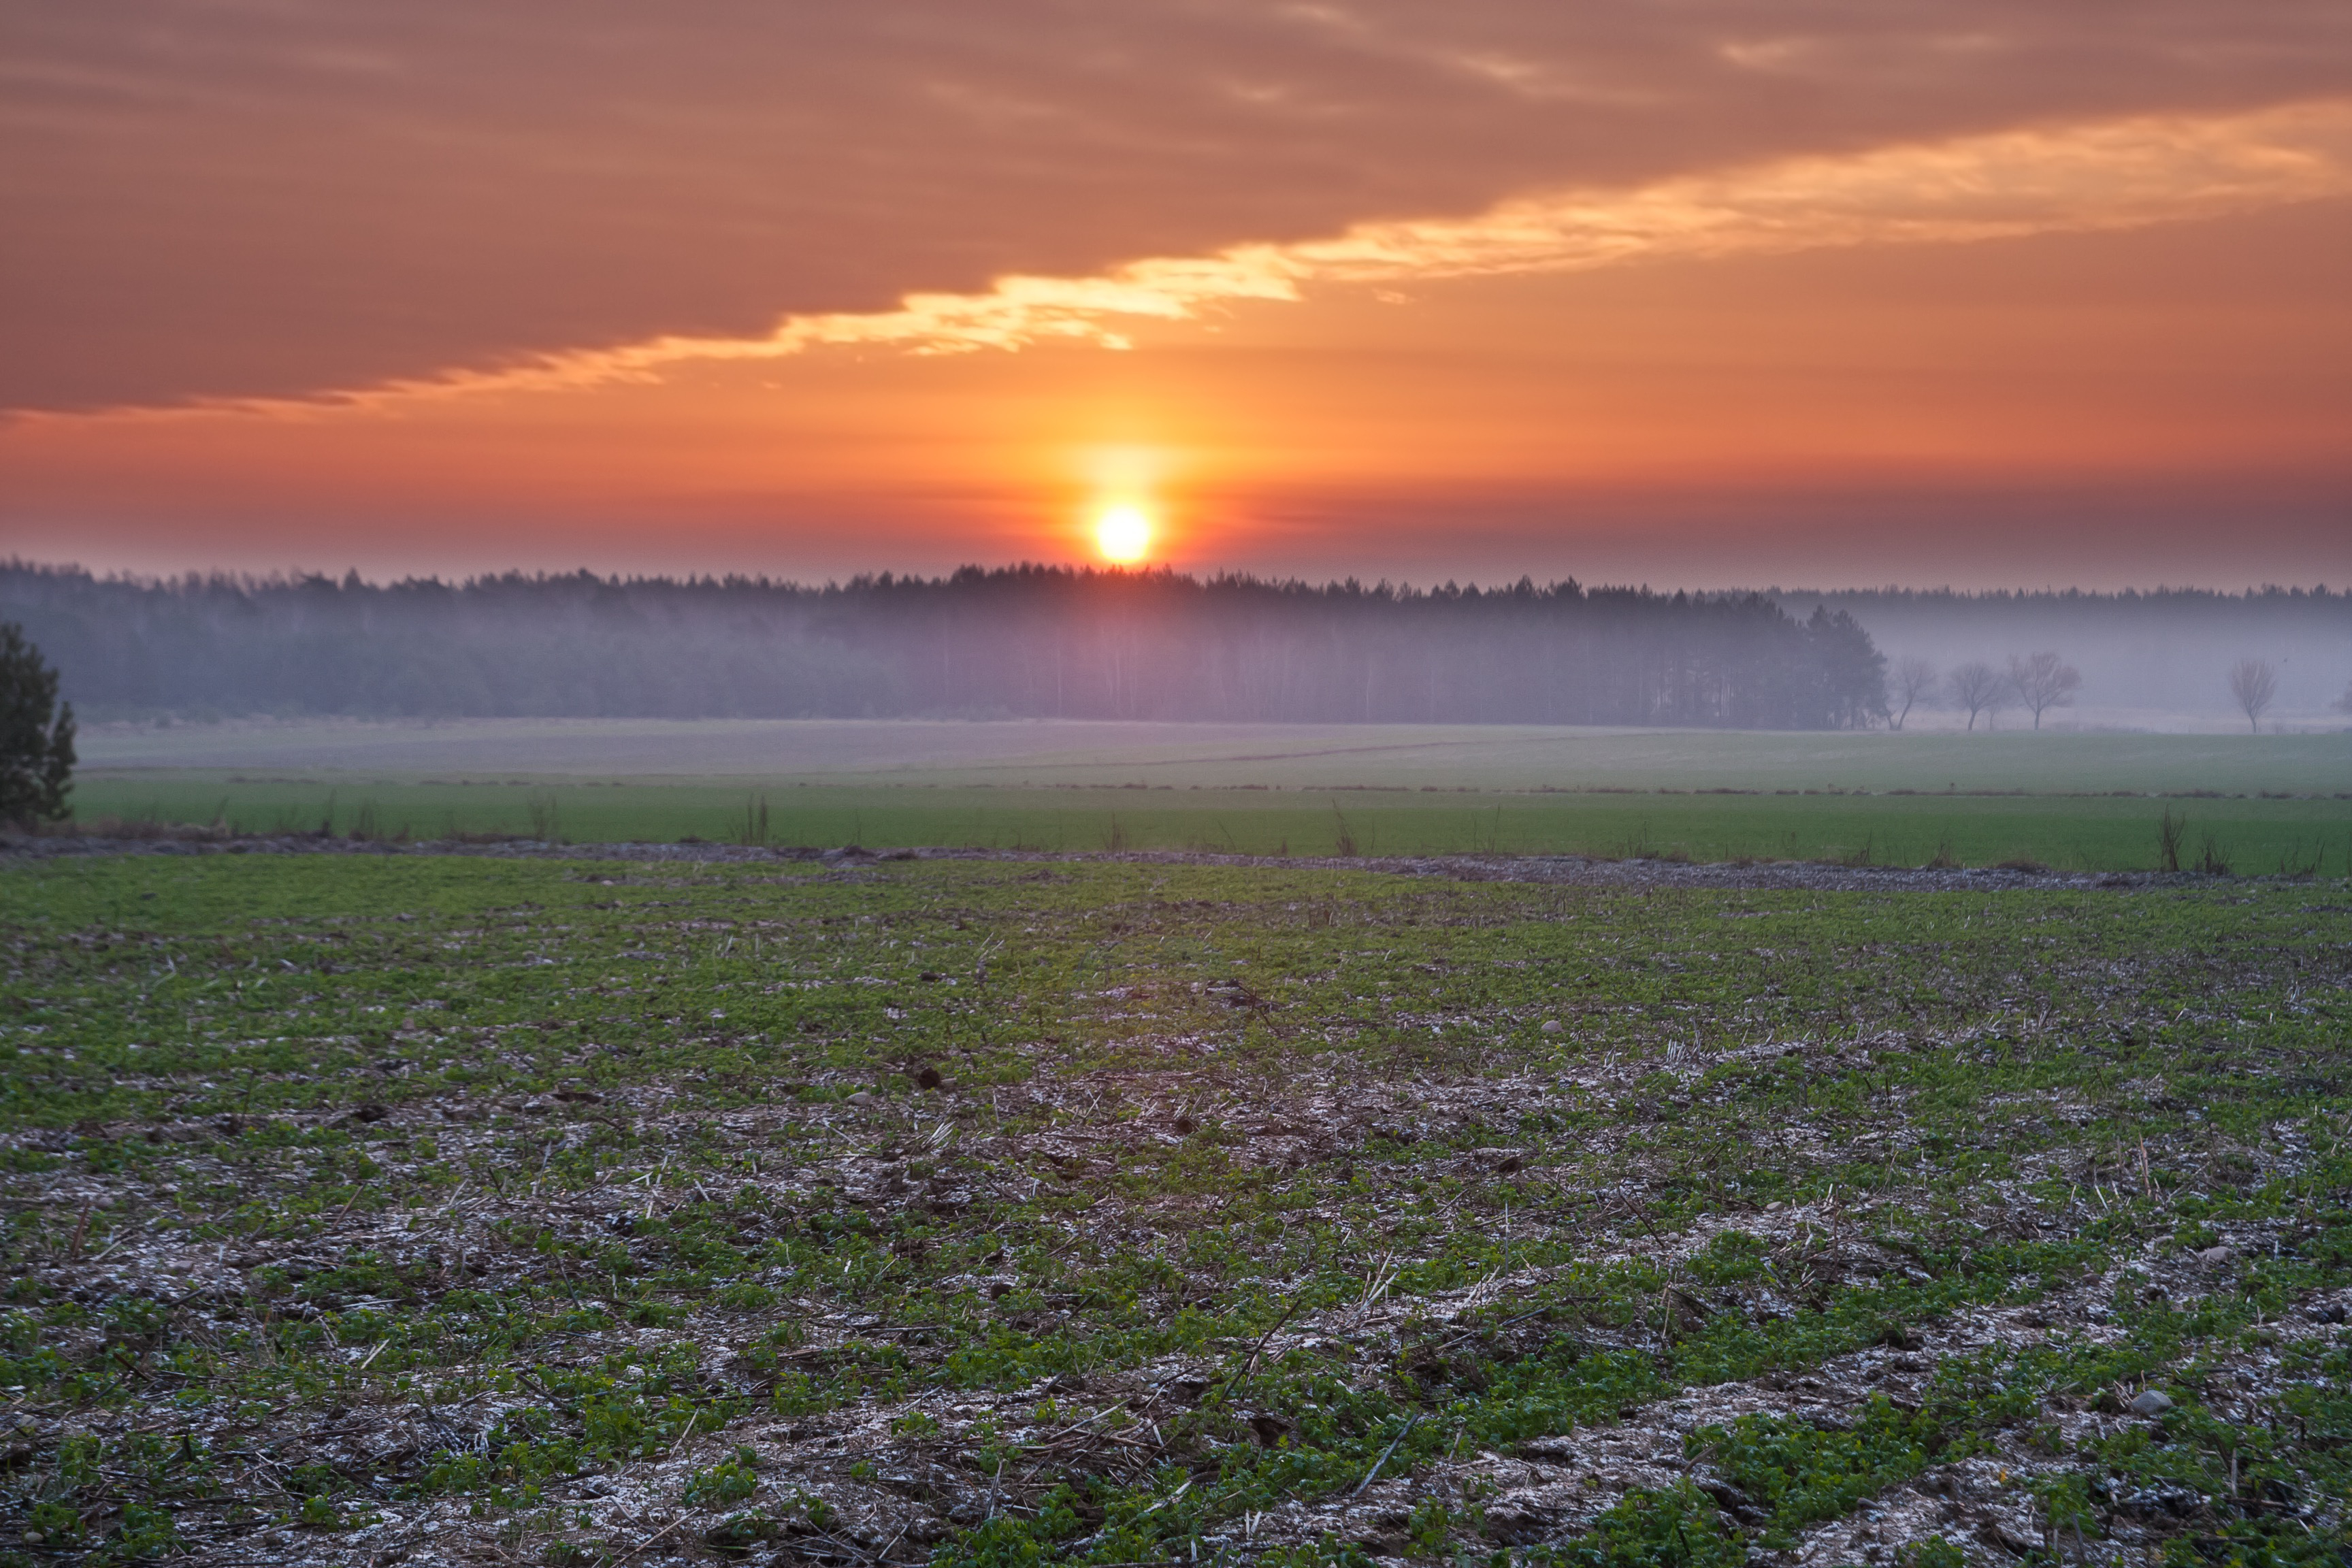 A foggy sunset over a field.